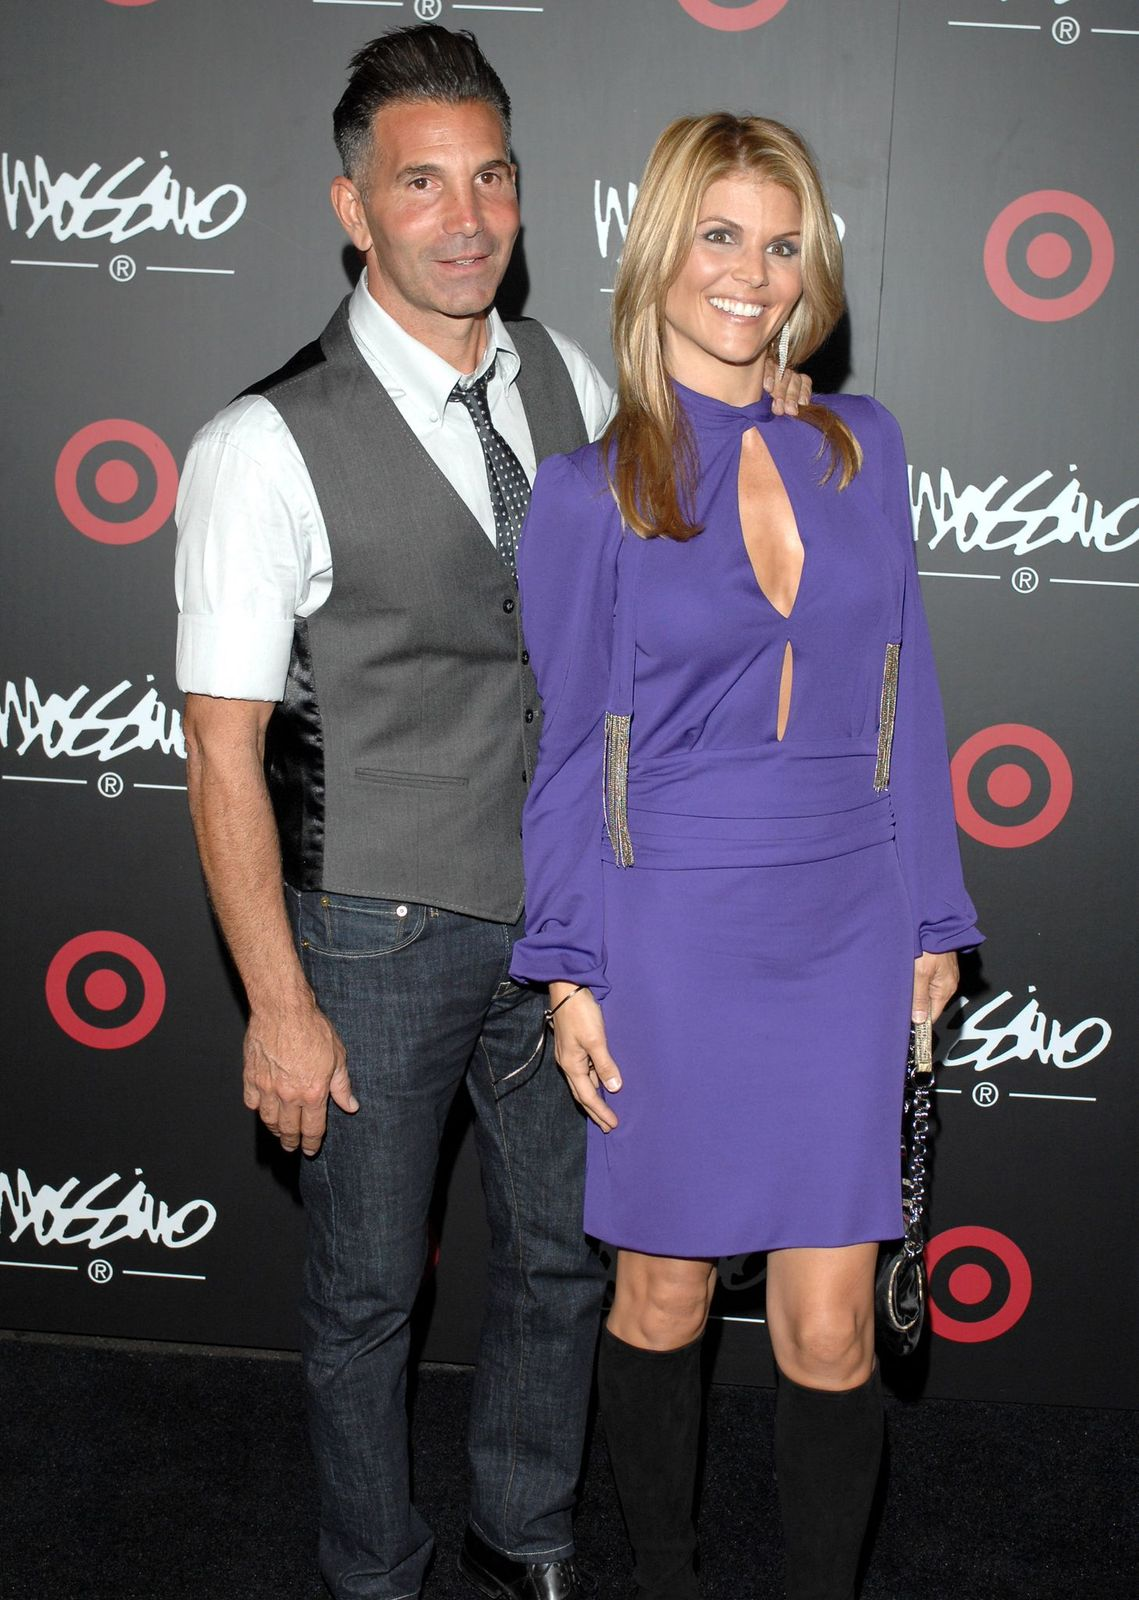 Mossimo Giannulli and Lori Loughlin at Target Hosts LA Fashion Week Party for Designer on October 19, 2006   Photo: Getty Images